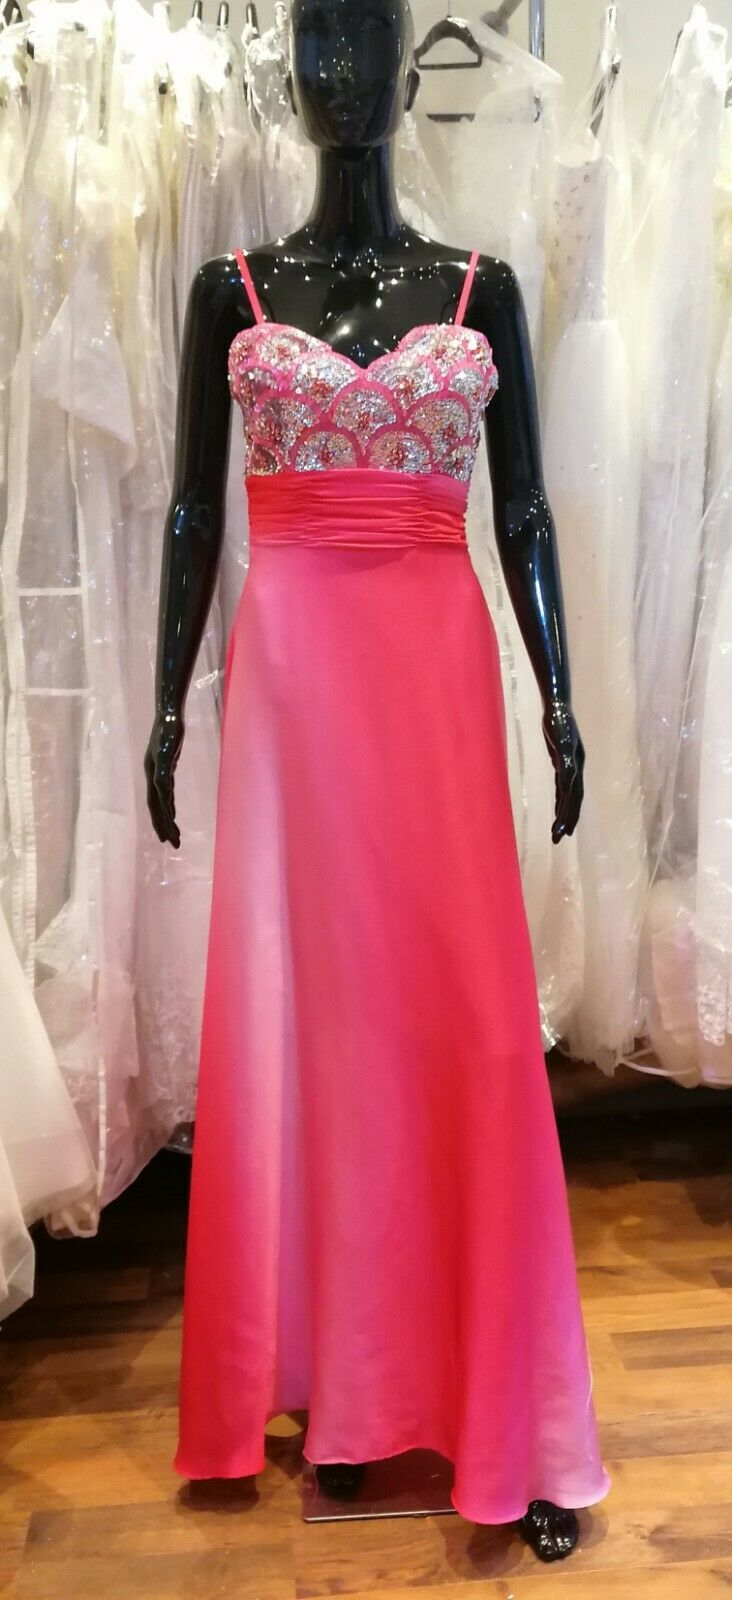 Quality Hot Pink Crystal Evening Prom Dress Size 8 New Condition Excellent Price